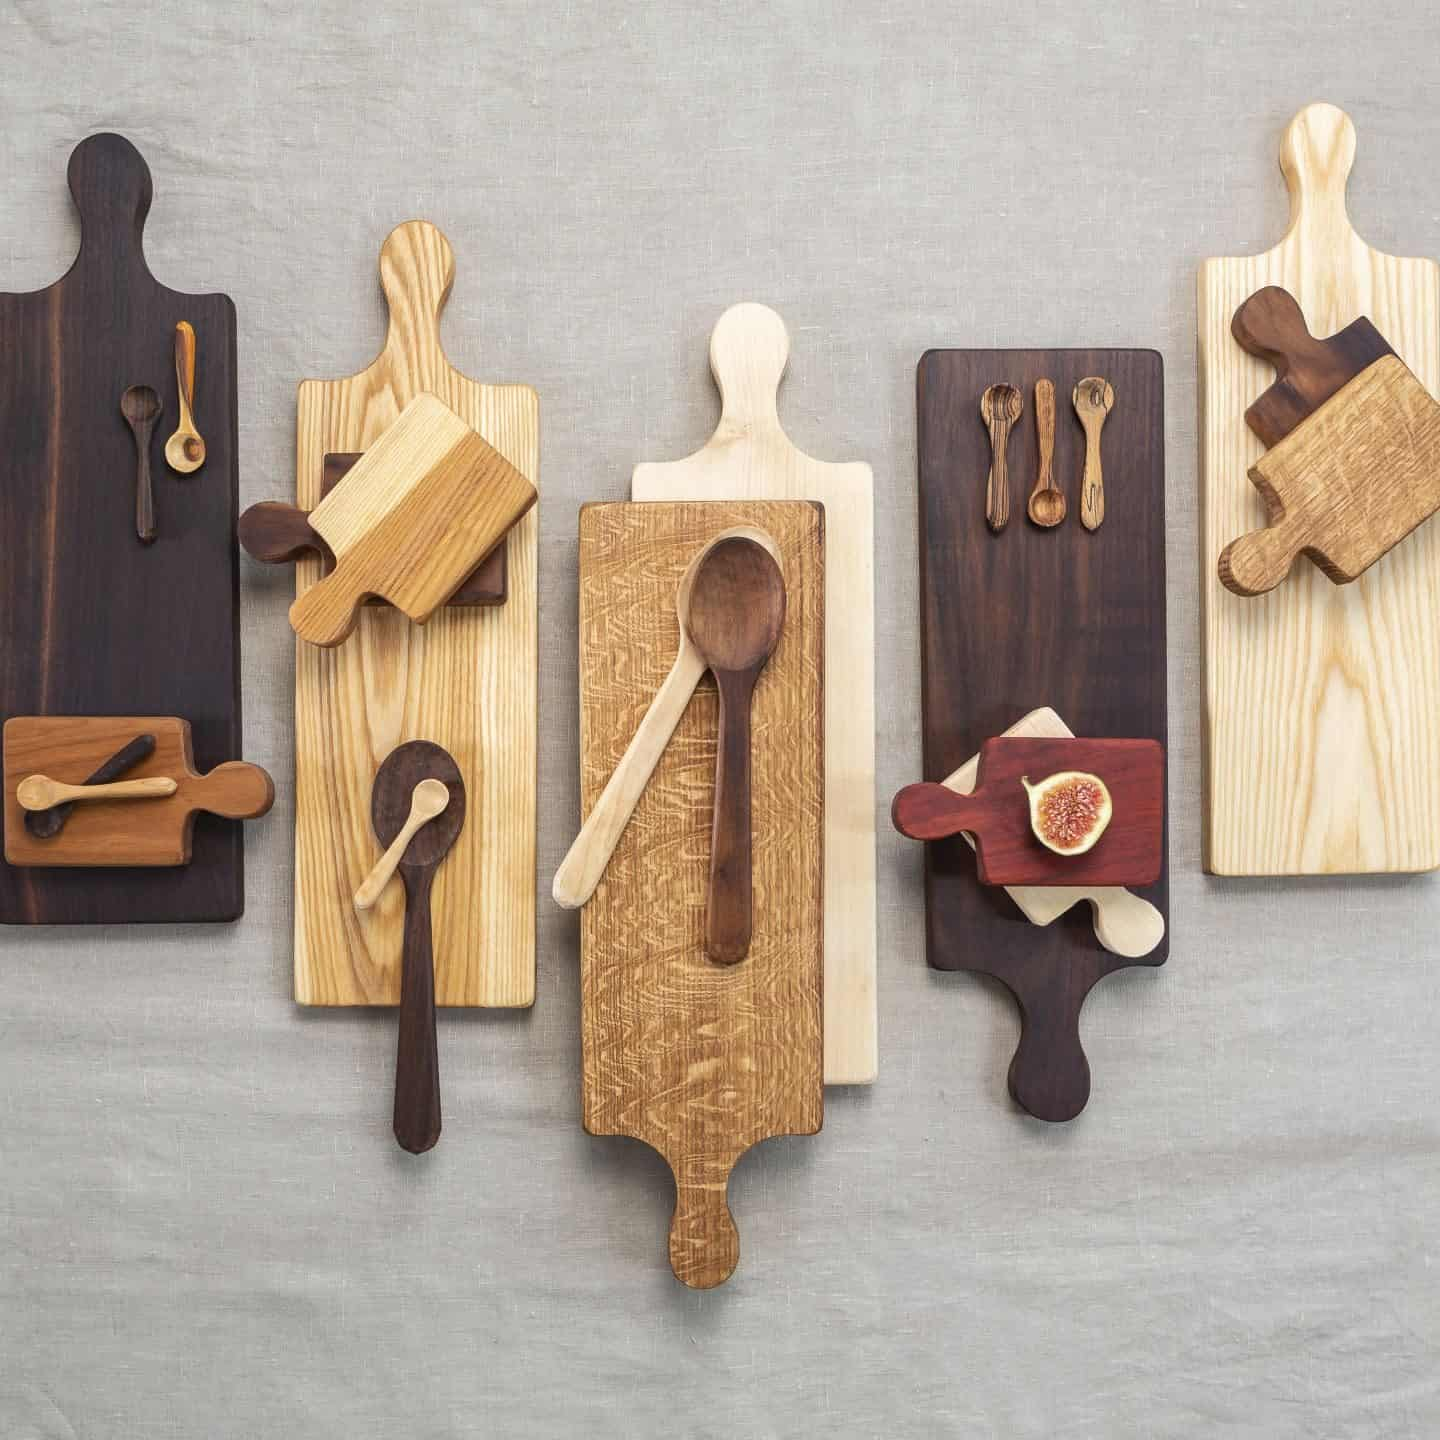 Martha & Me artisan collection - wooden chopping boards